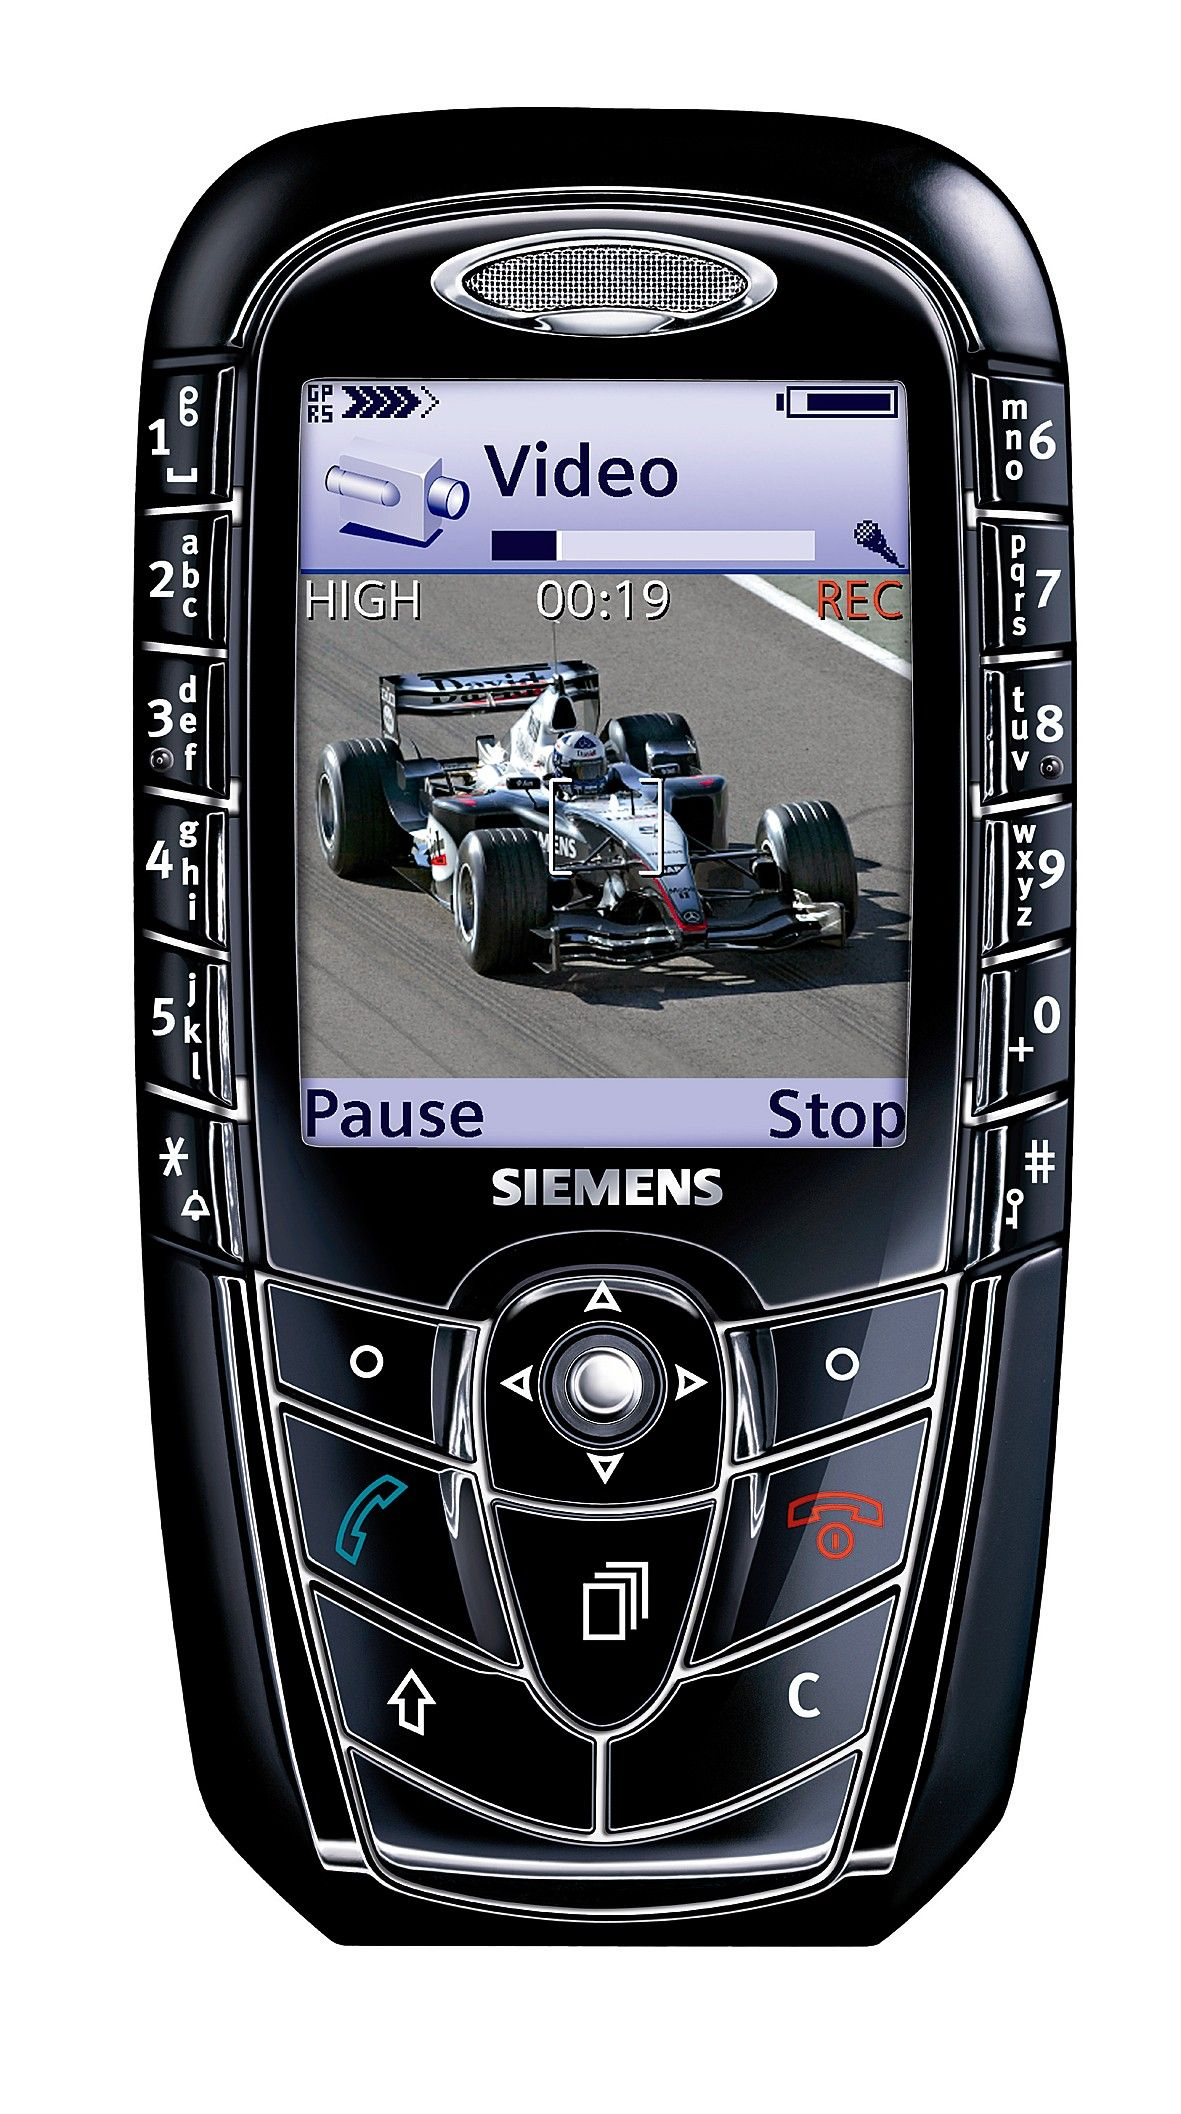 Siemens Sx 1 Cool Gadgets In 2019 Smartphone Phone New Phones